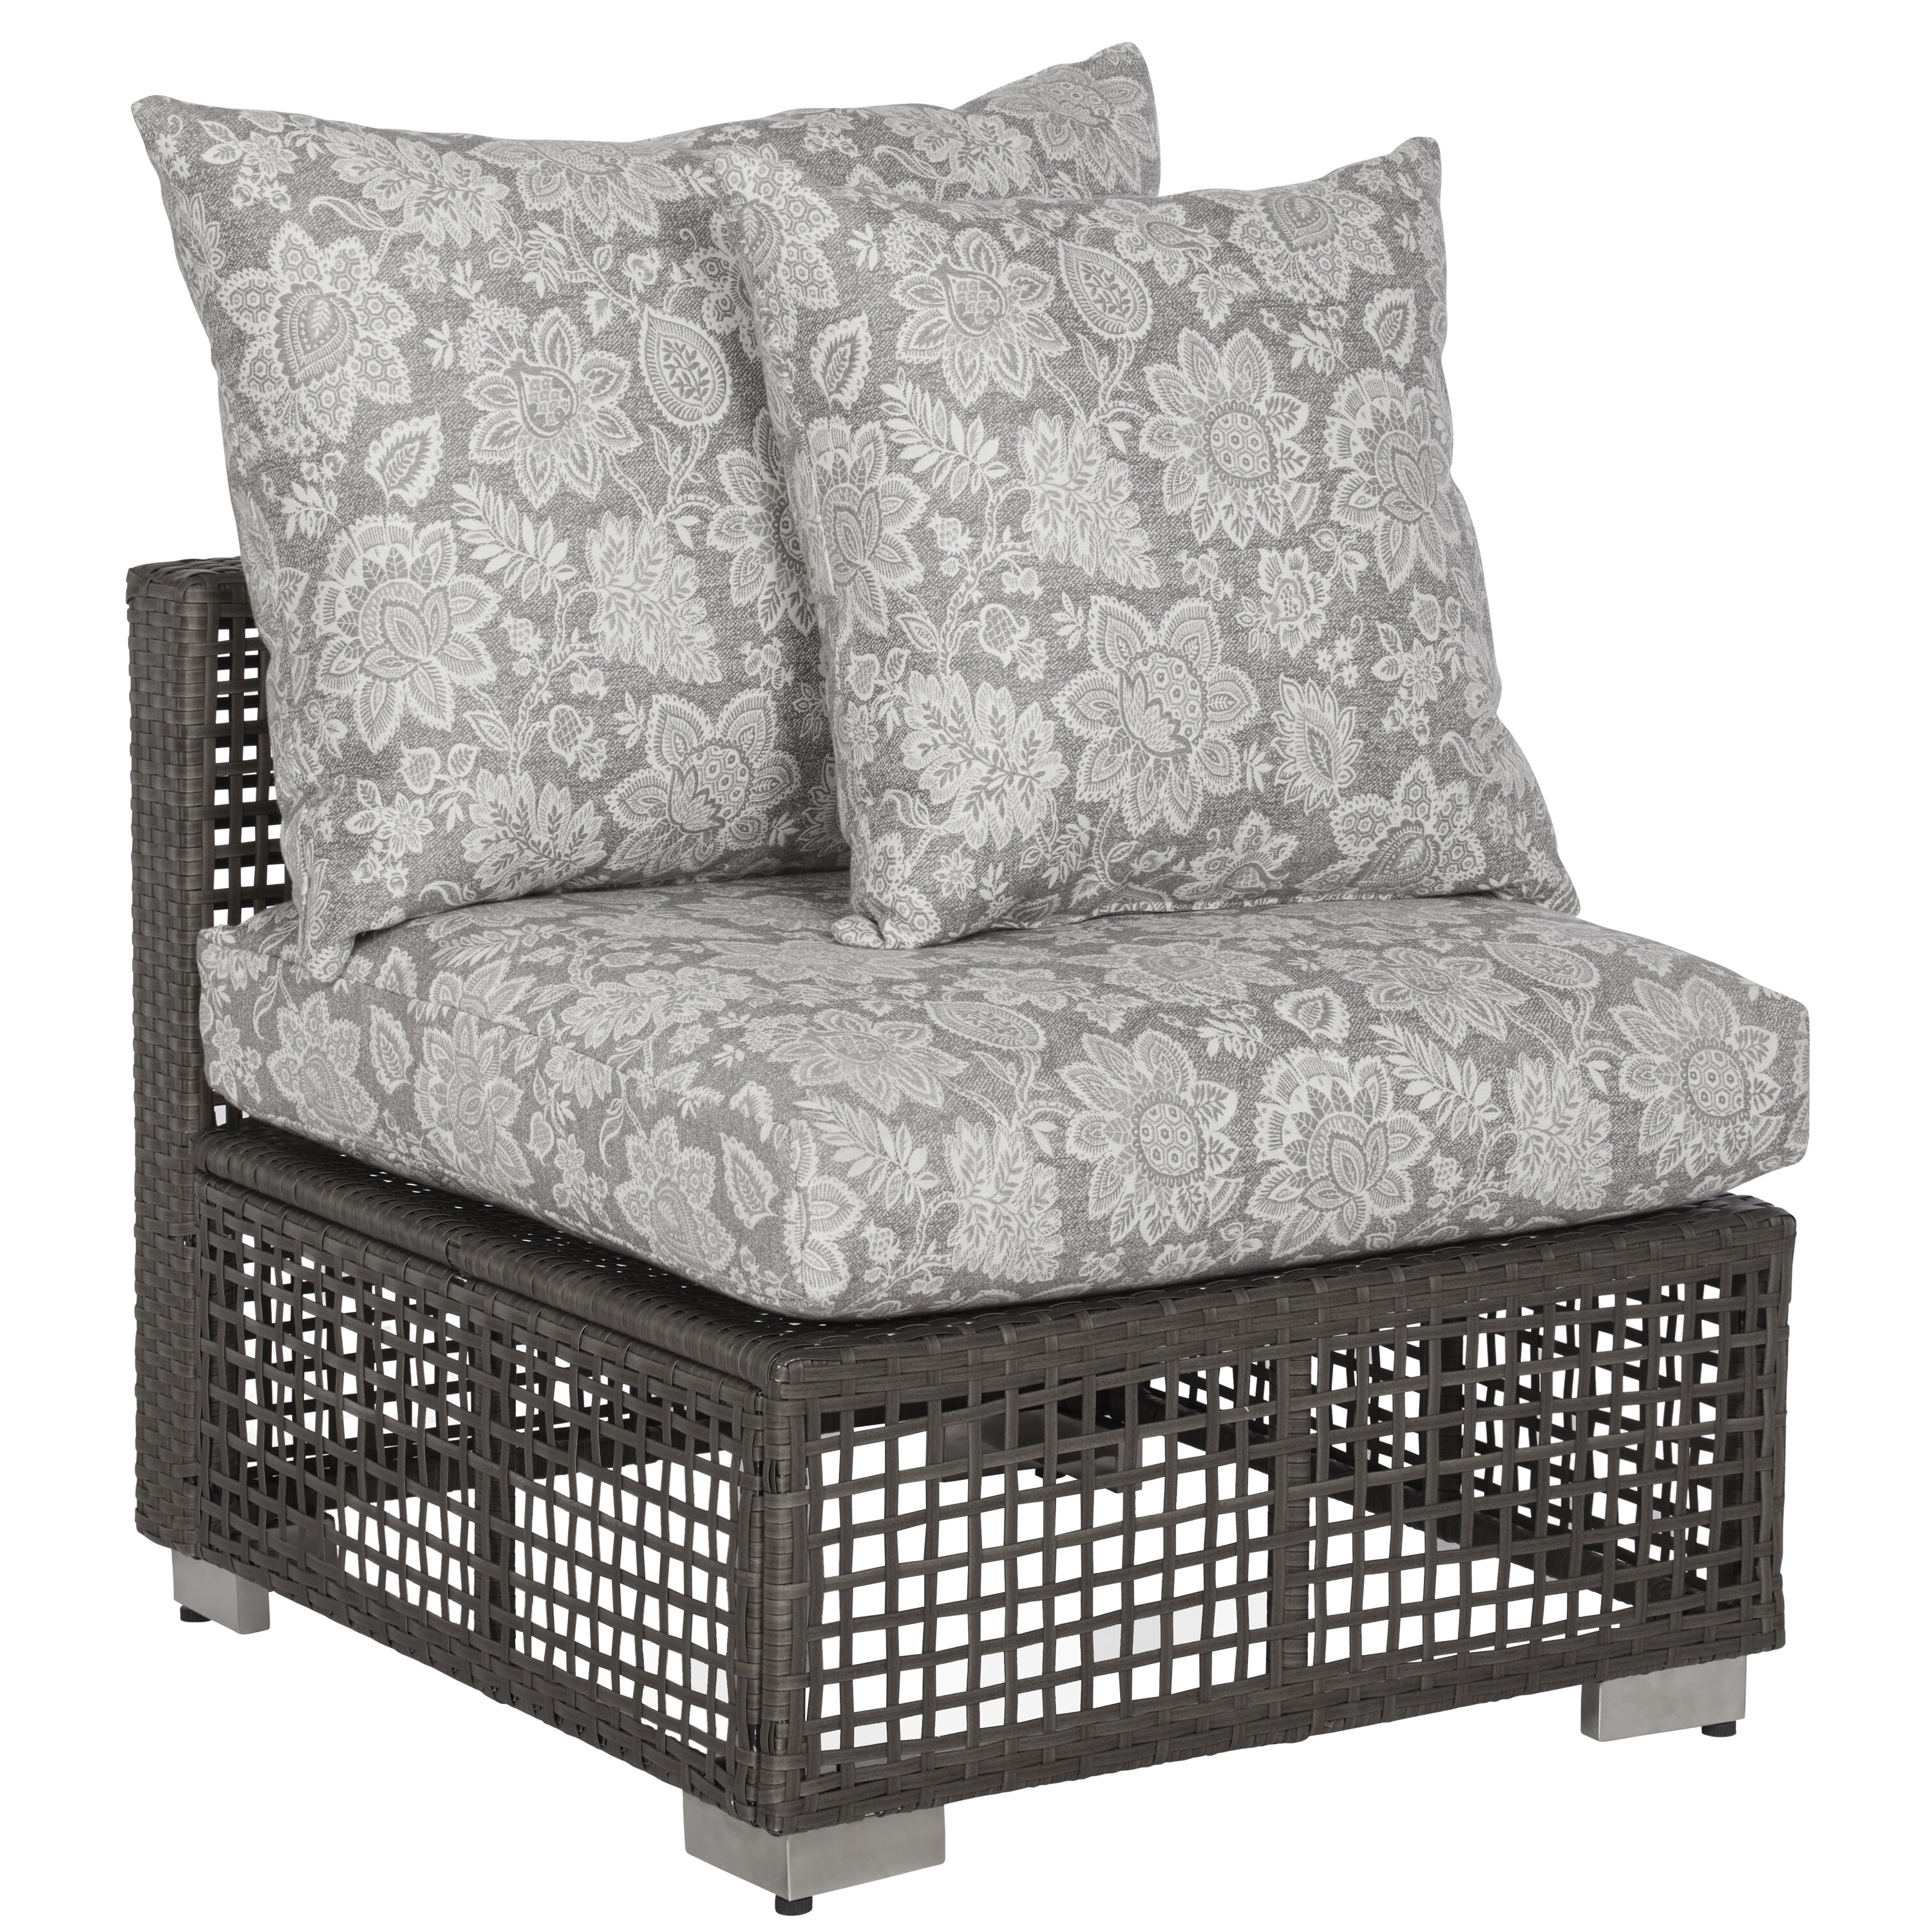 Well Liked Ivy Bronx Mcmanis Outdoor Open Weave Rattan Patio Chair With Inside Mcmanis Patio Sofas With Cushion (View 19 of 20)